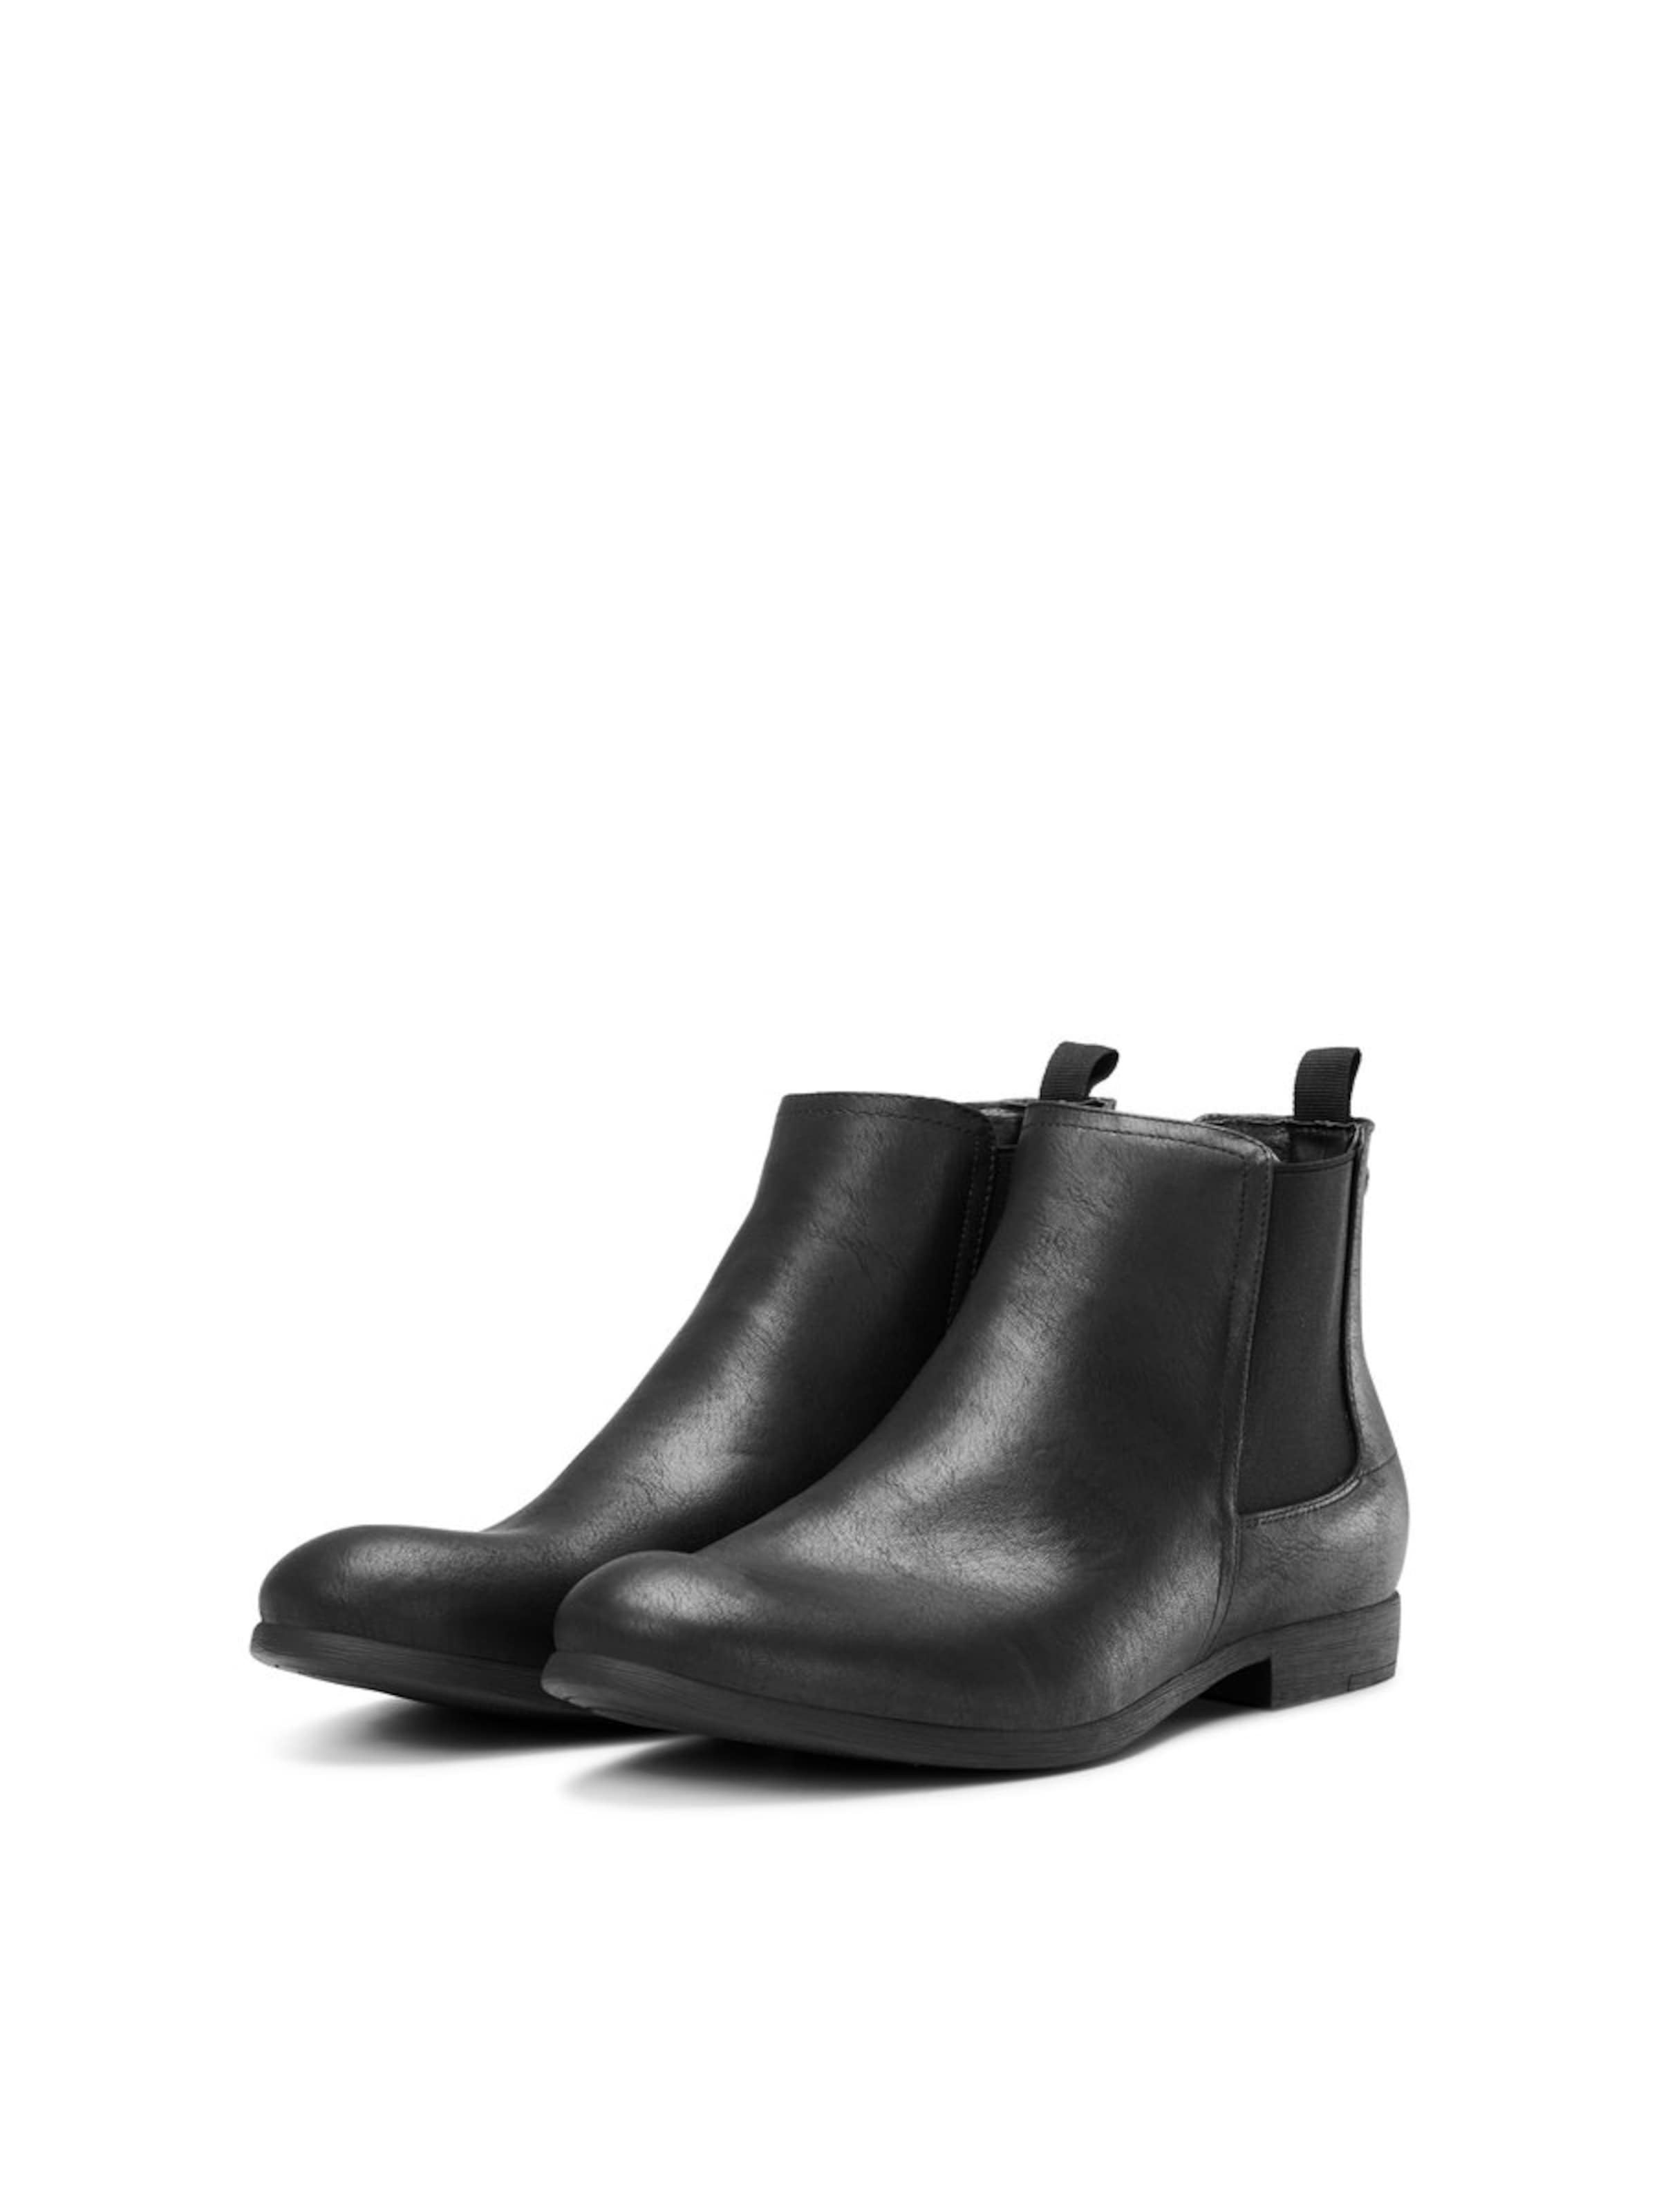 'must Noir Jackamp; En Jones Chelsea have' Boots l1J3KFTcu